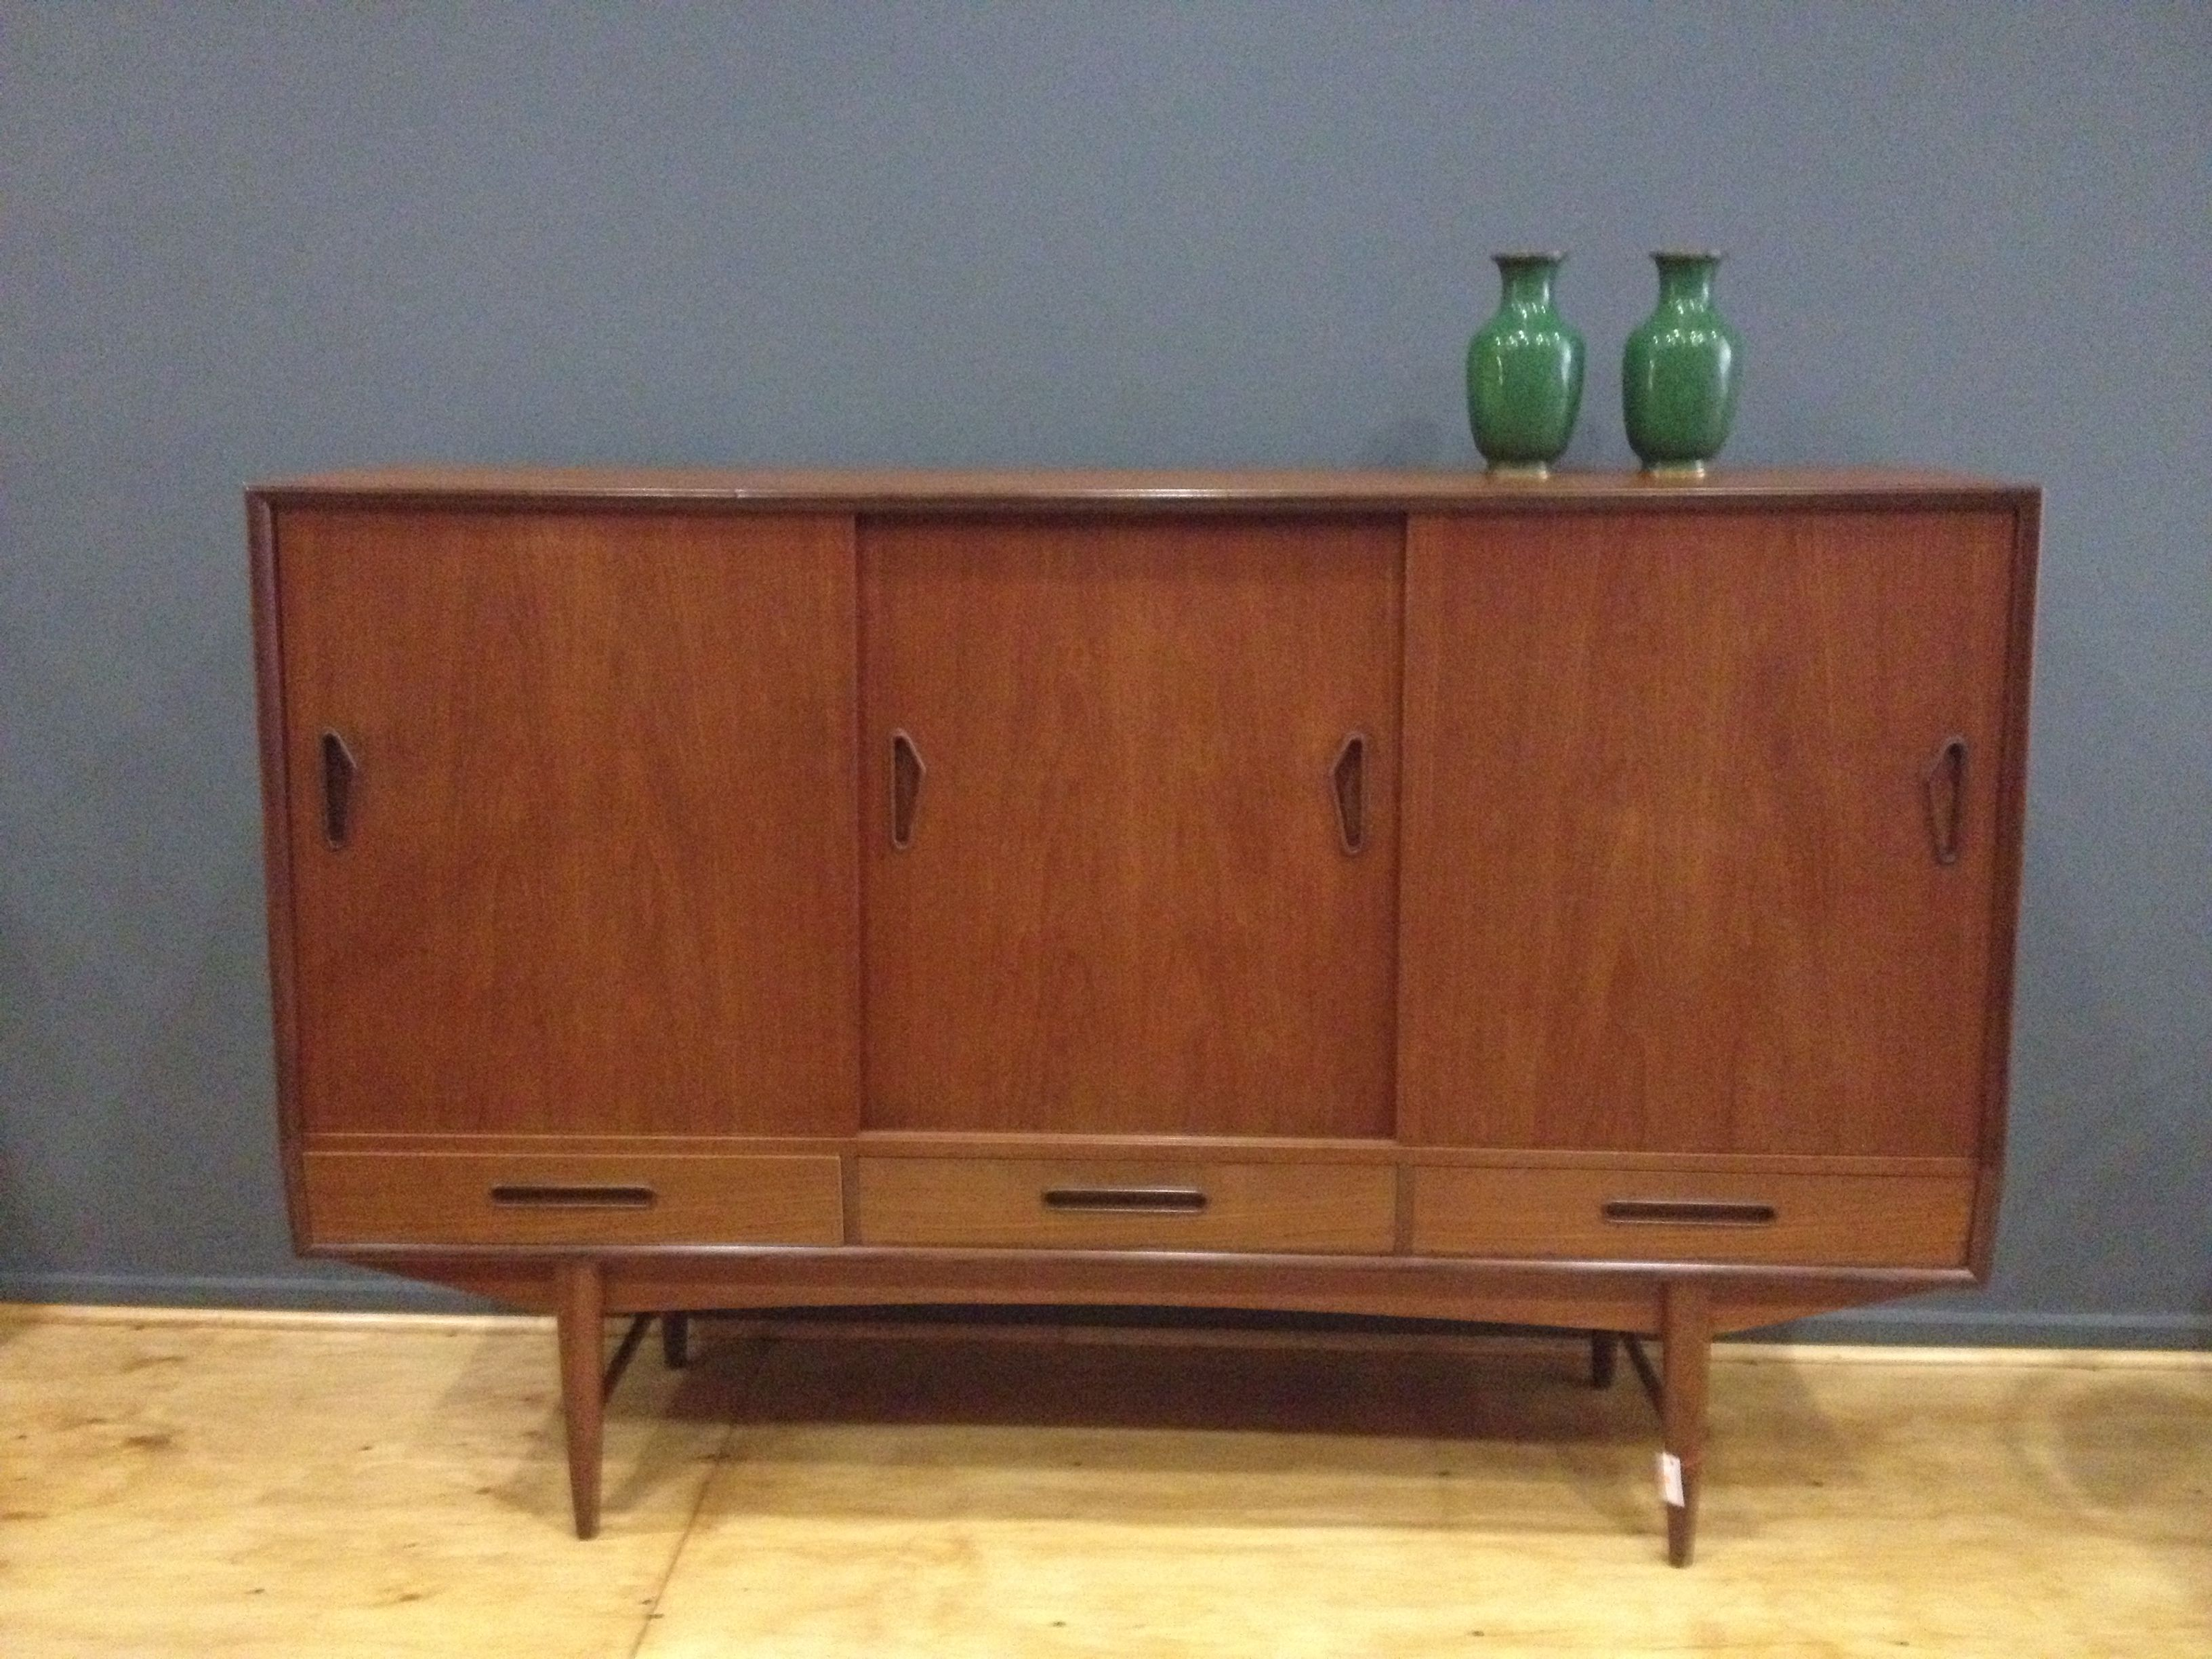 Decada Muebles Vintage Credenza de madera, Sideboard, Furniture ...